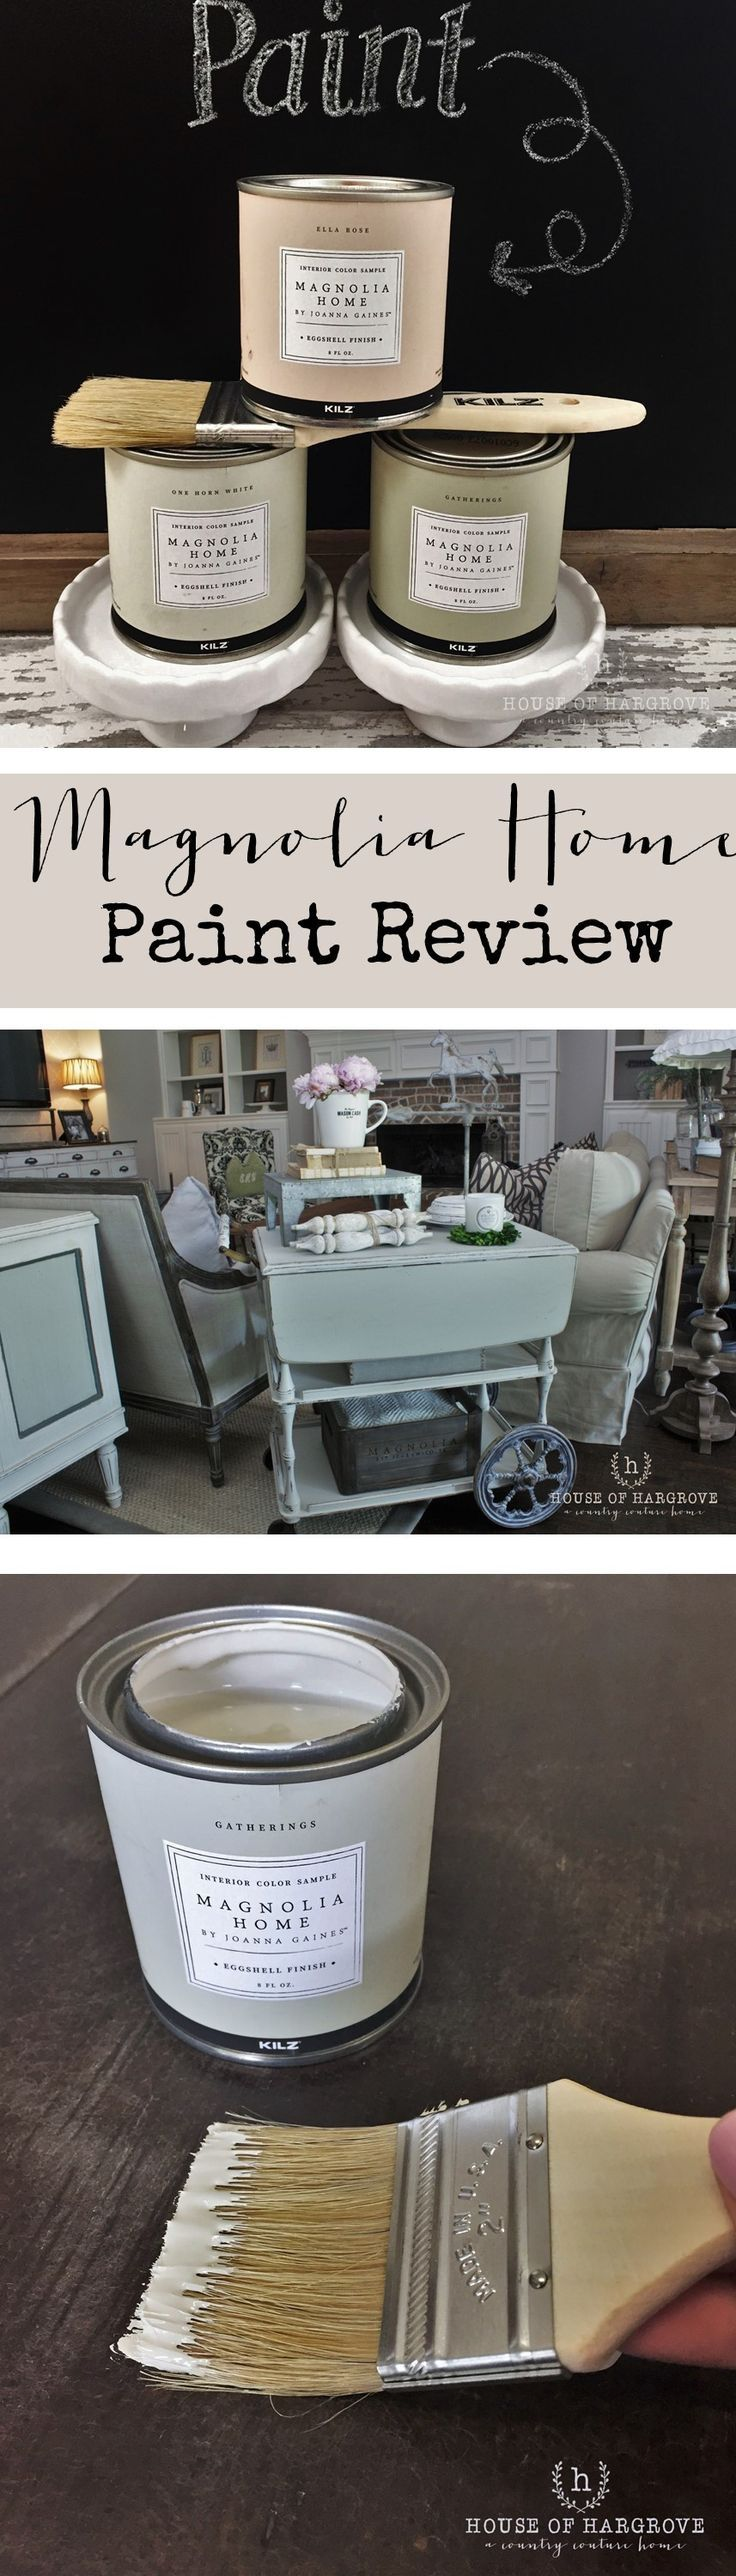 Magnolia Home Paint Review Sharing My Thoughts On The New Line By Joanna Gaines I Used It To Make Over An Antique Piece Of Furniture